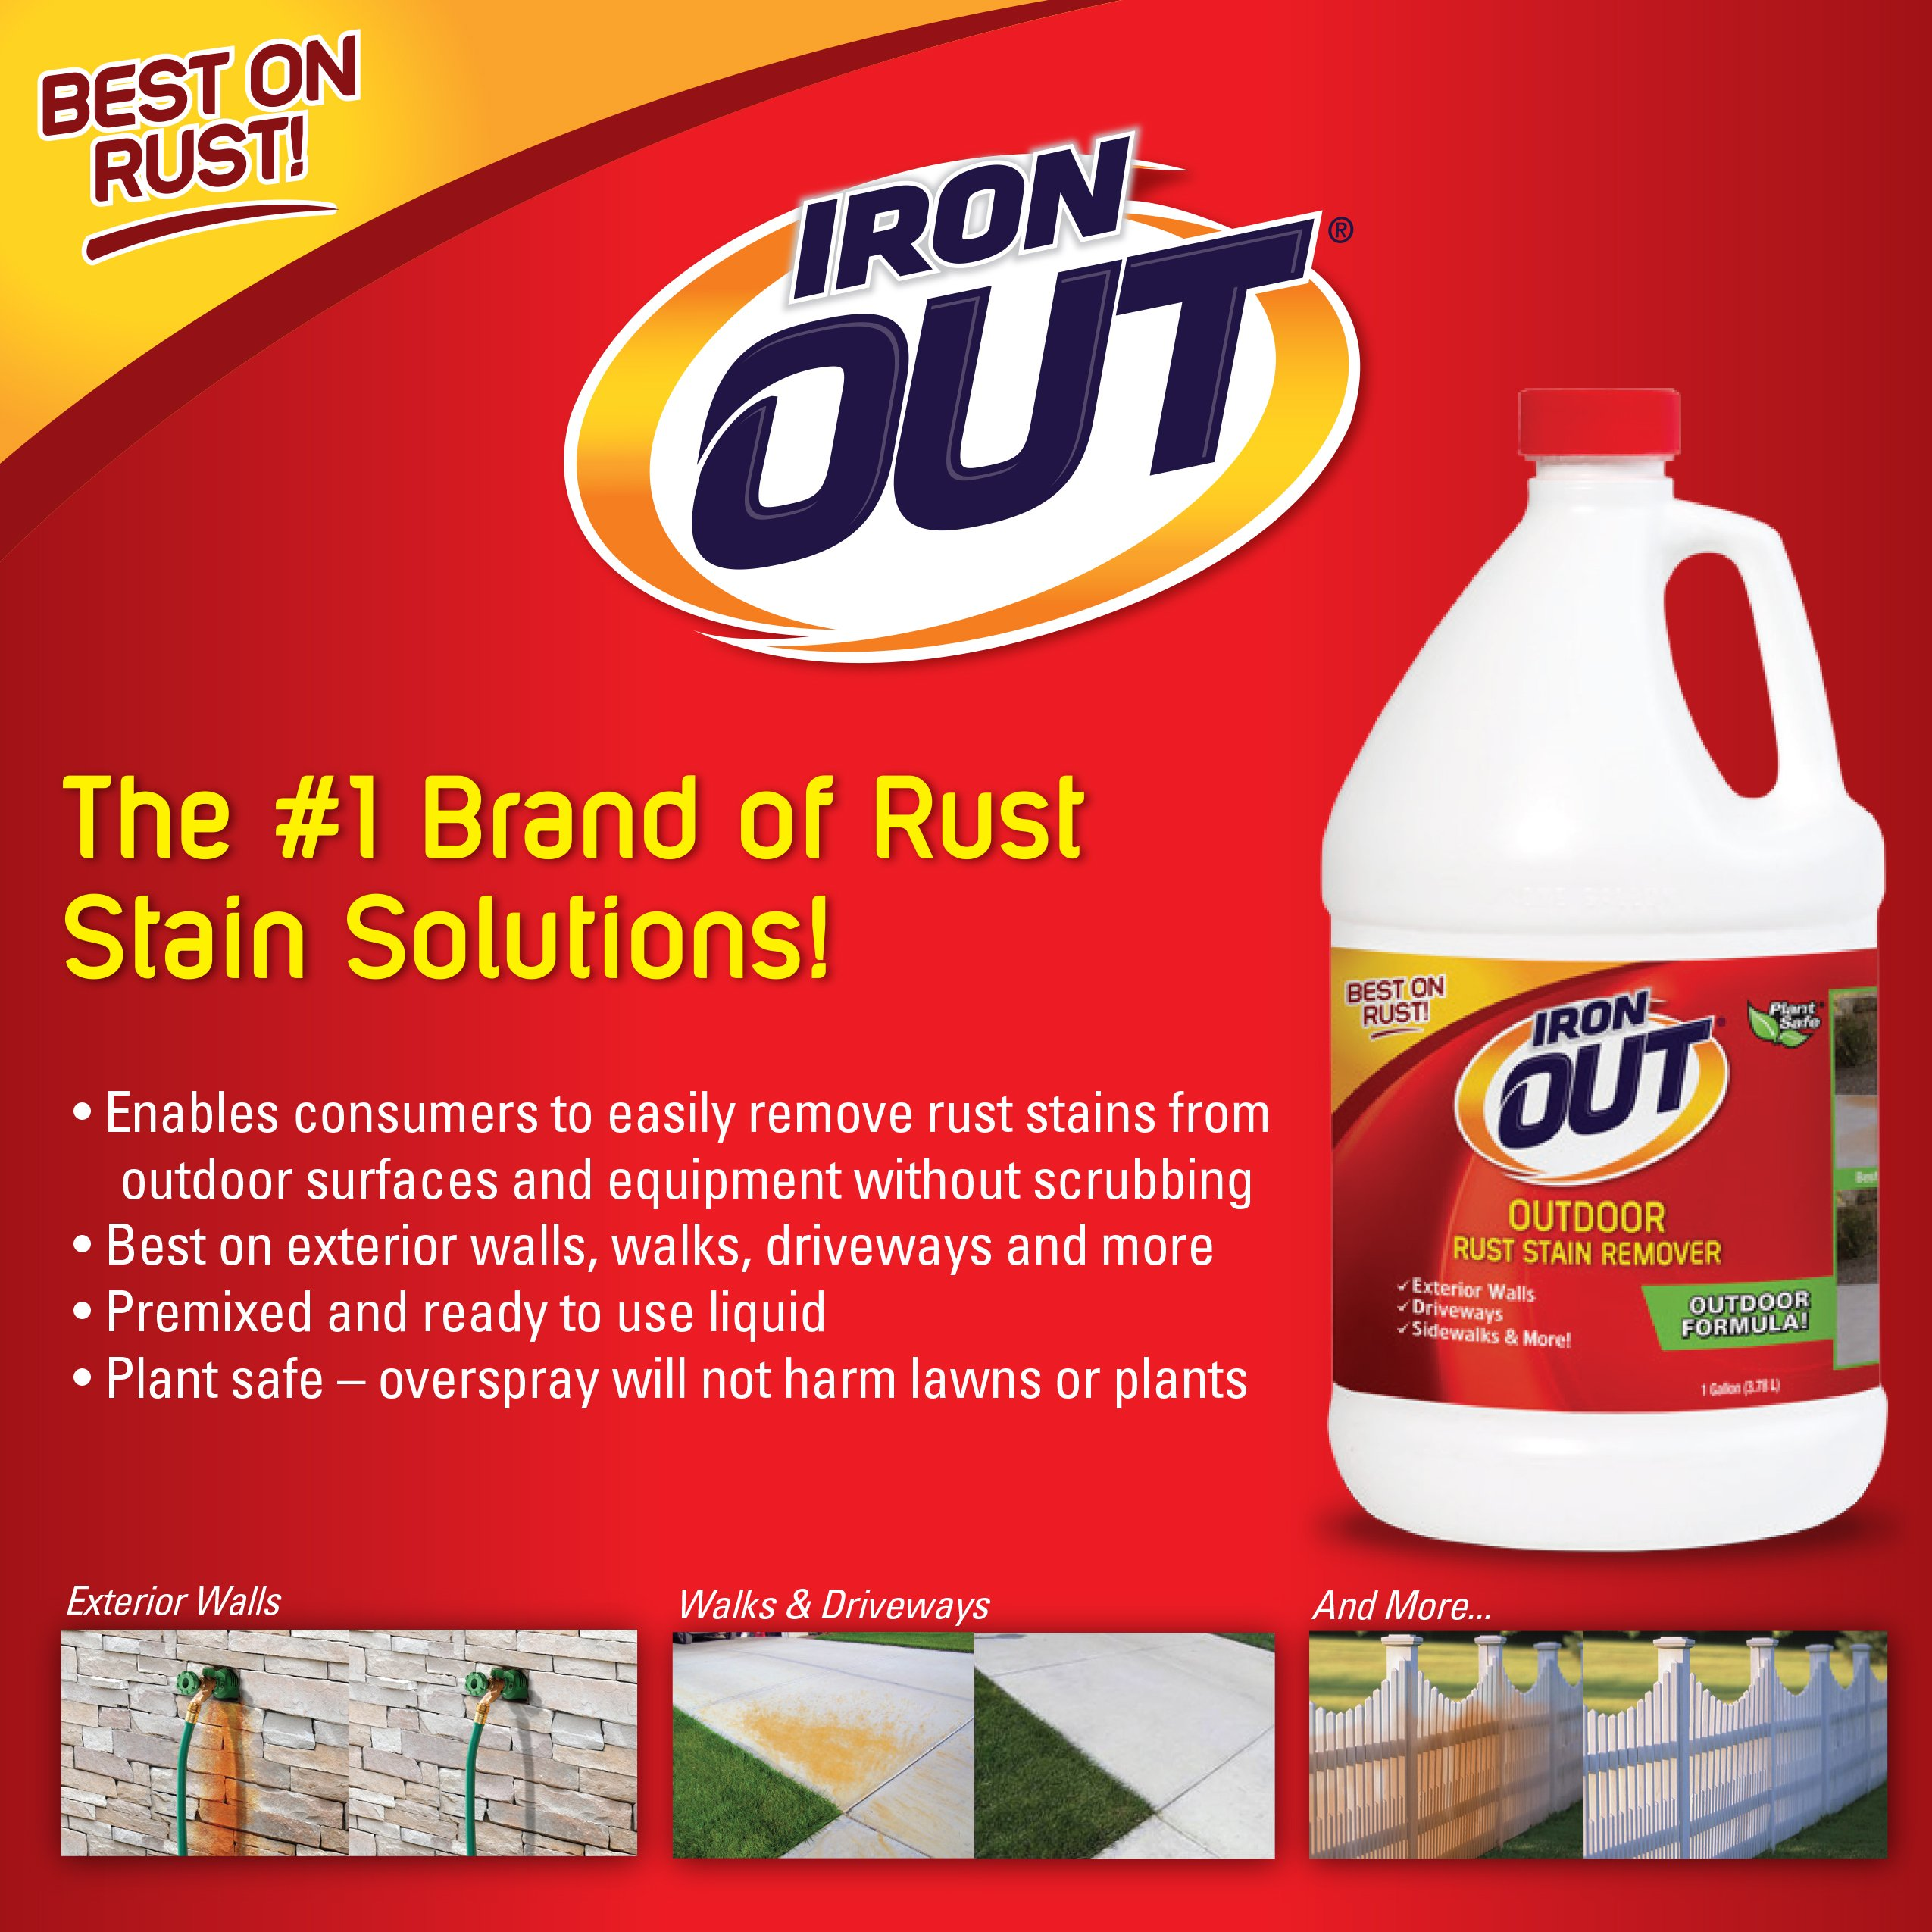 Iron OUT Outdoor Rust Stain Remover, 1 Gallon, 4 Pack by Summit Brands (Image #5)